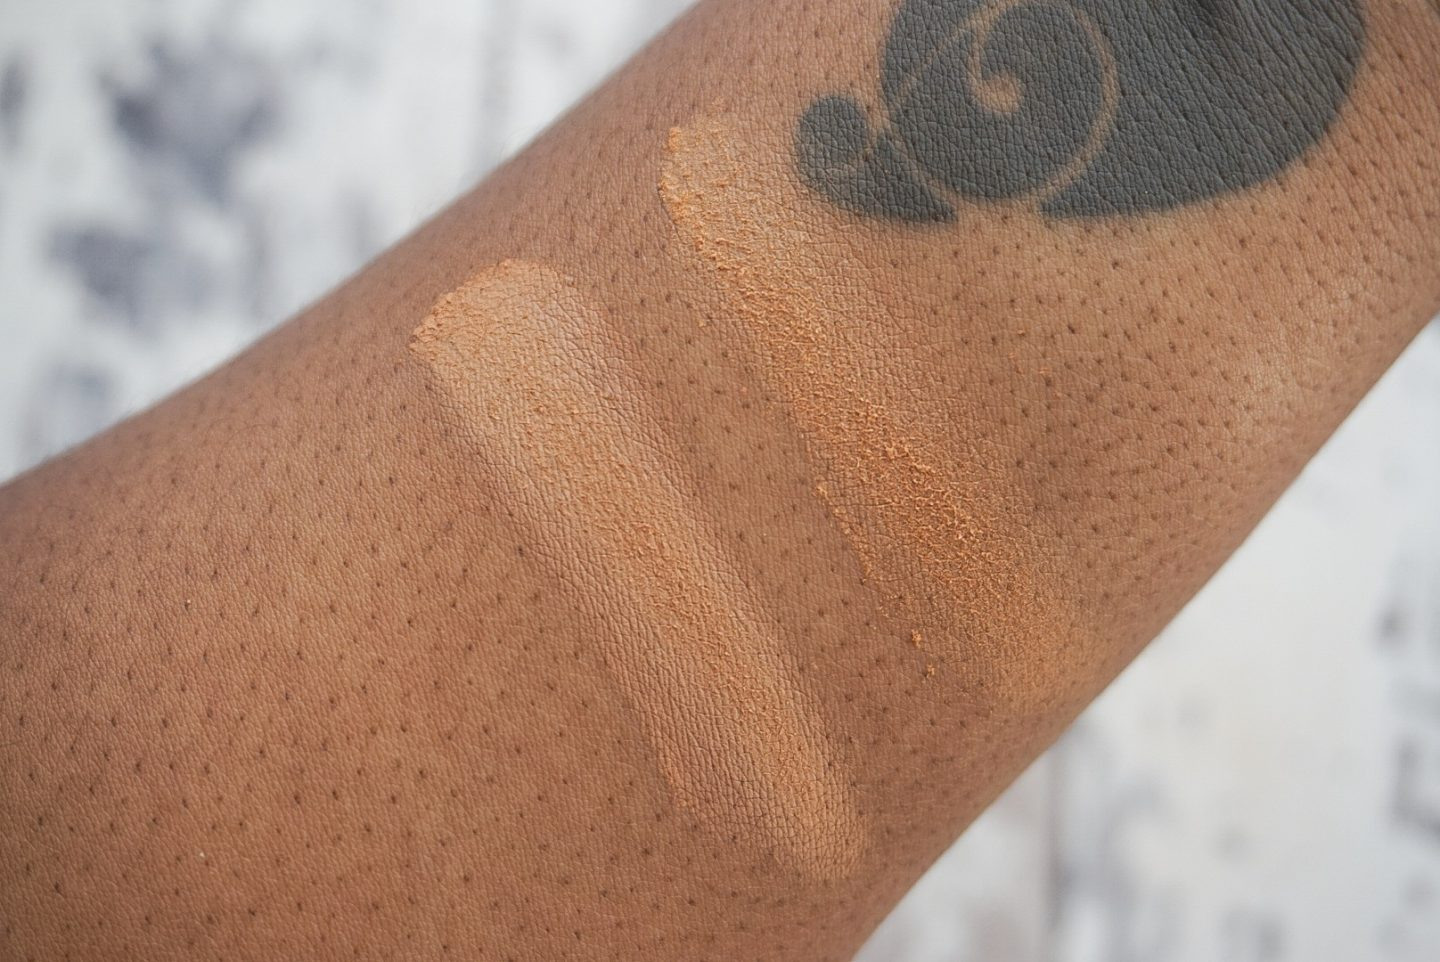 Fenty Beauty Pro Filt'r Concealers 360 380 Instant Retouch Powder Nutmeg 420 Dark Skin Black Skin Review